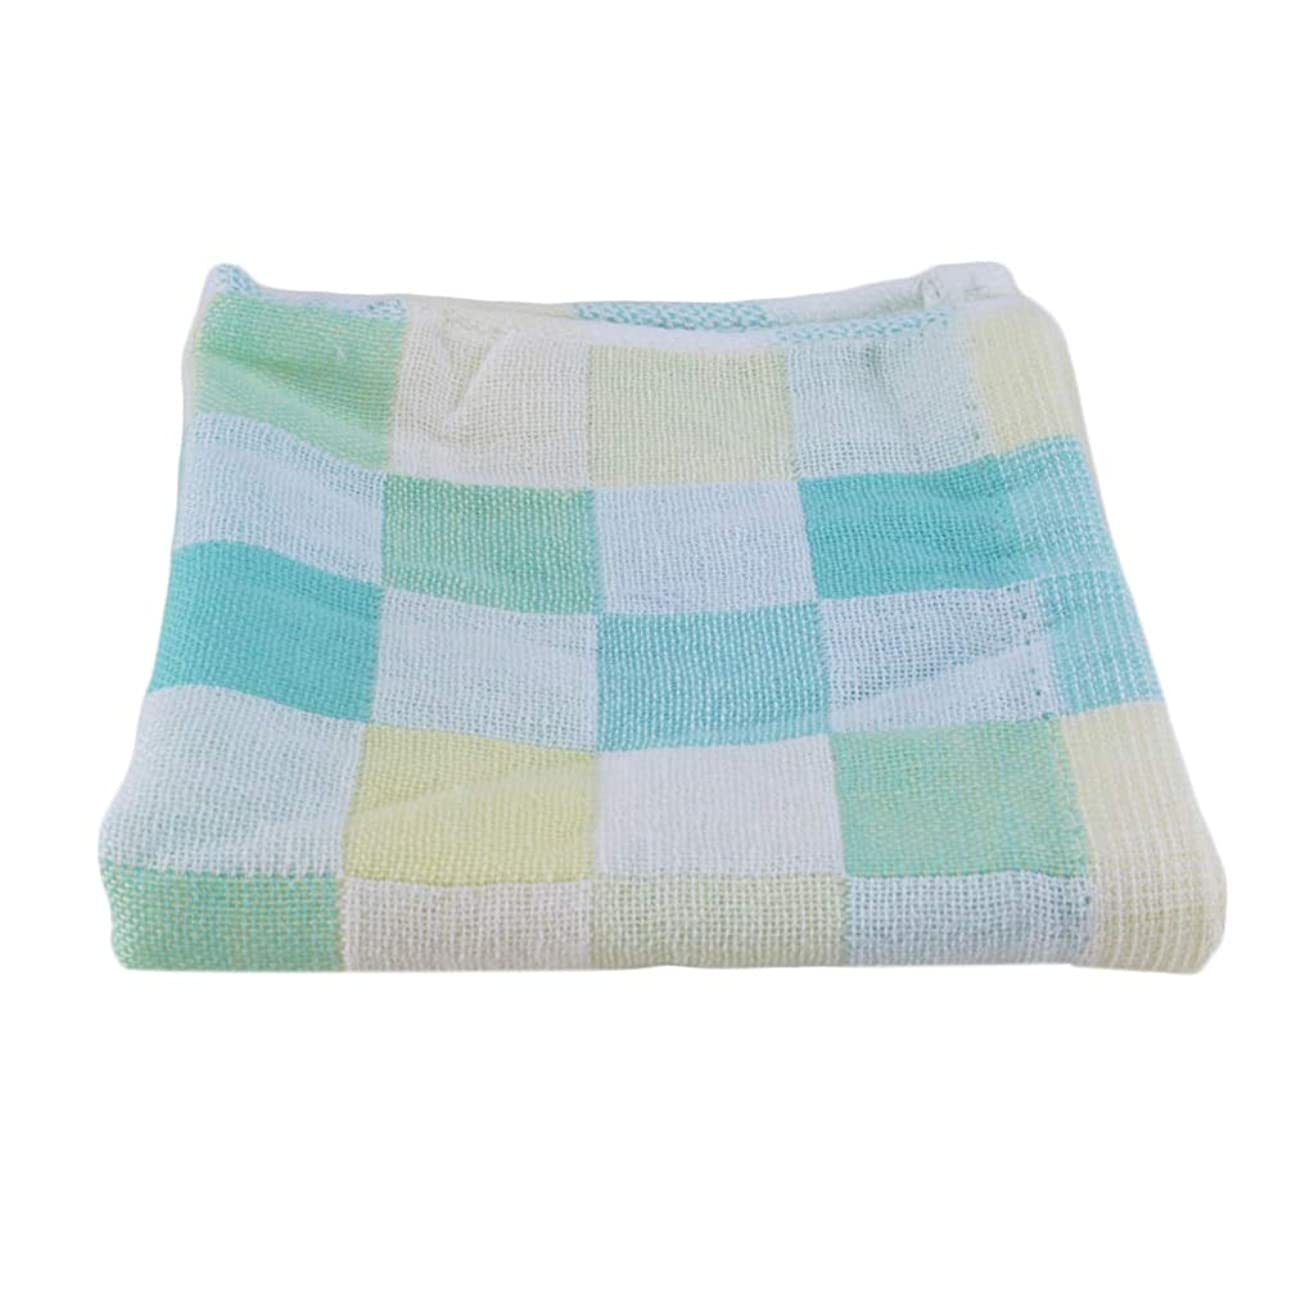 意図するレンダー簡潔なMaxcrestas - 28*28cm Square Towels Cotton gauze Plaid Towel Kids Bibs Daily Use Hand Face Towels for Kids